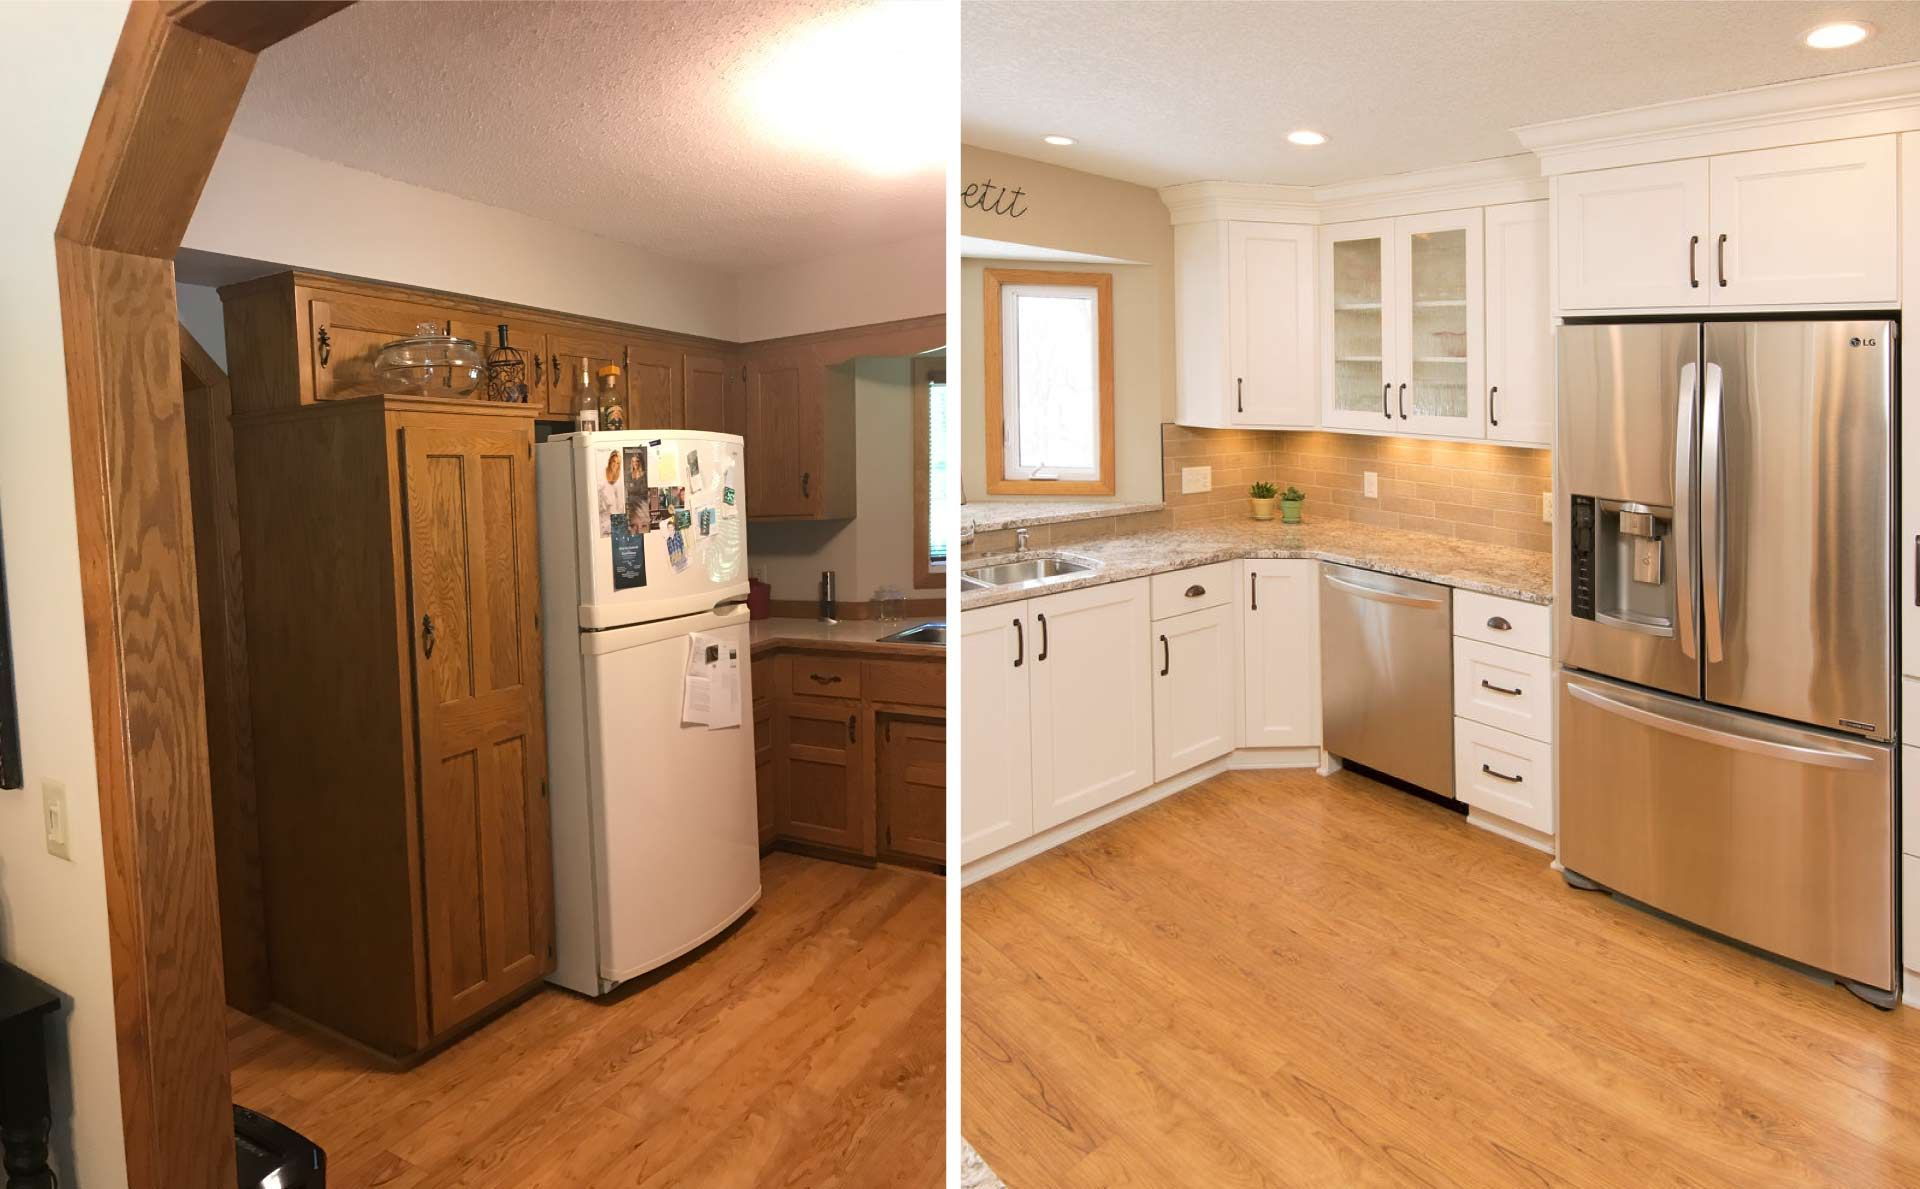 House Covered In Oak 90 S Oak Cabinets Doors Floors And Railings Need Updating Here S Our Adv In 2020 Oak Kitchen Cabinets Updating Oak Cabinets Oak Floor Kitchen